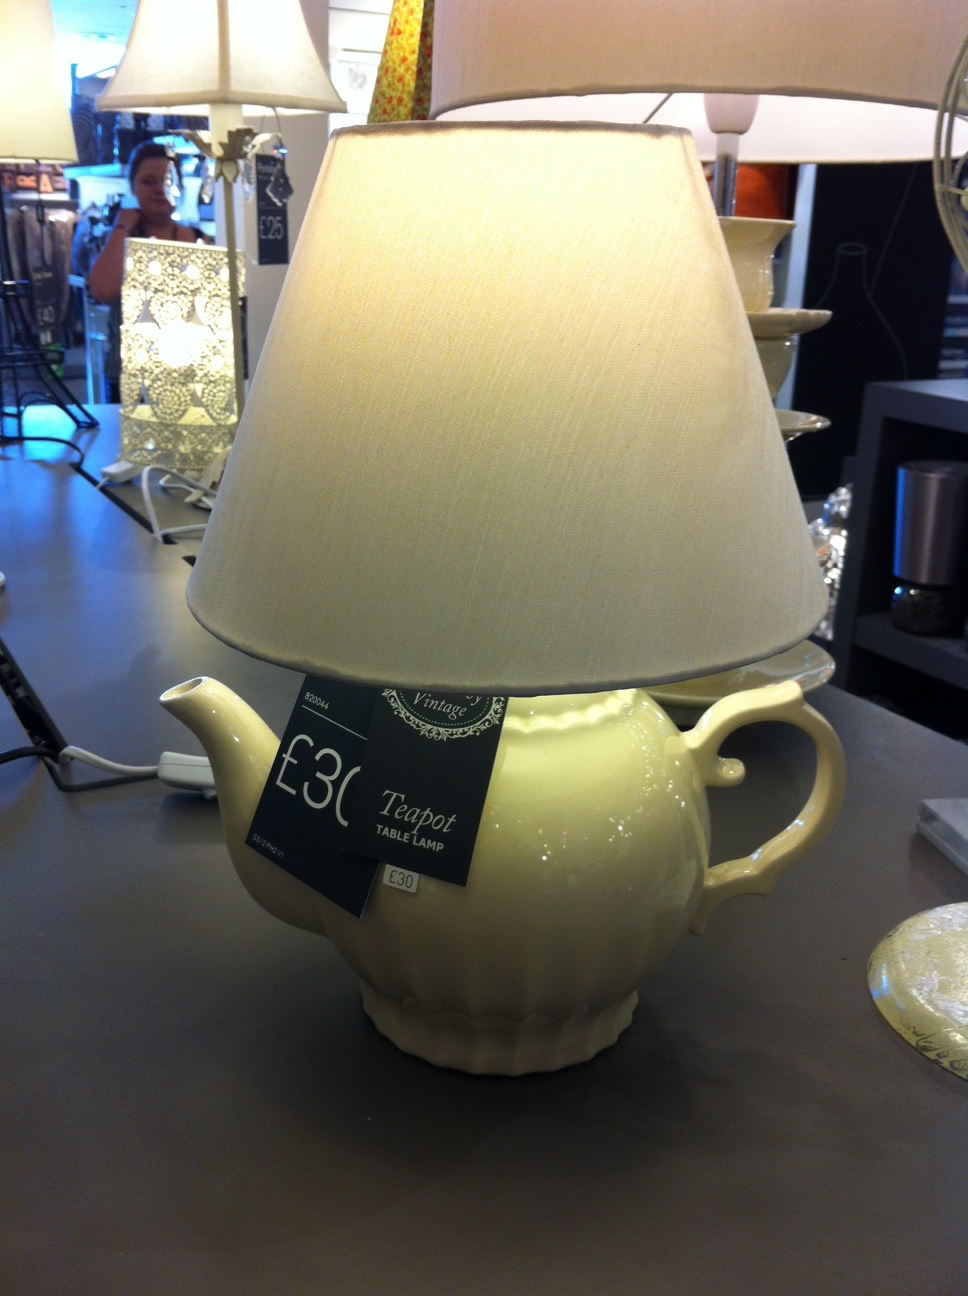 Tea Pot Table Lamp & Tea Cups Standing Lamp from Next